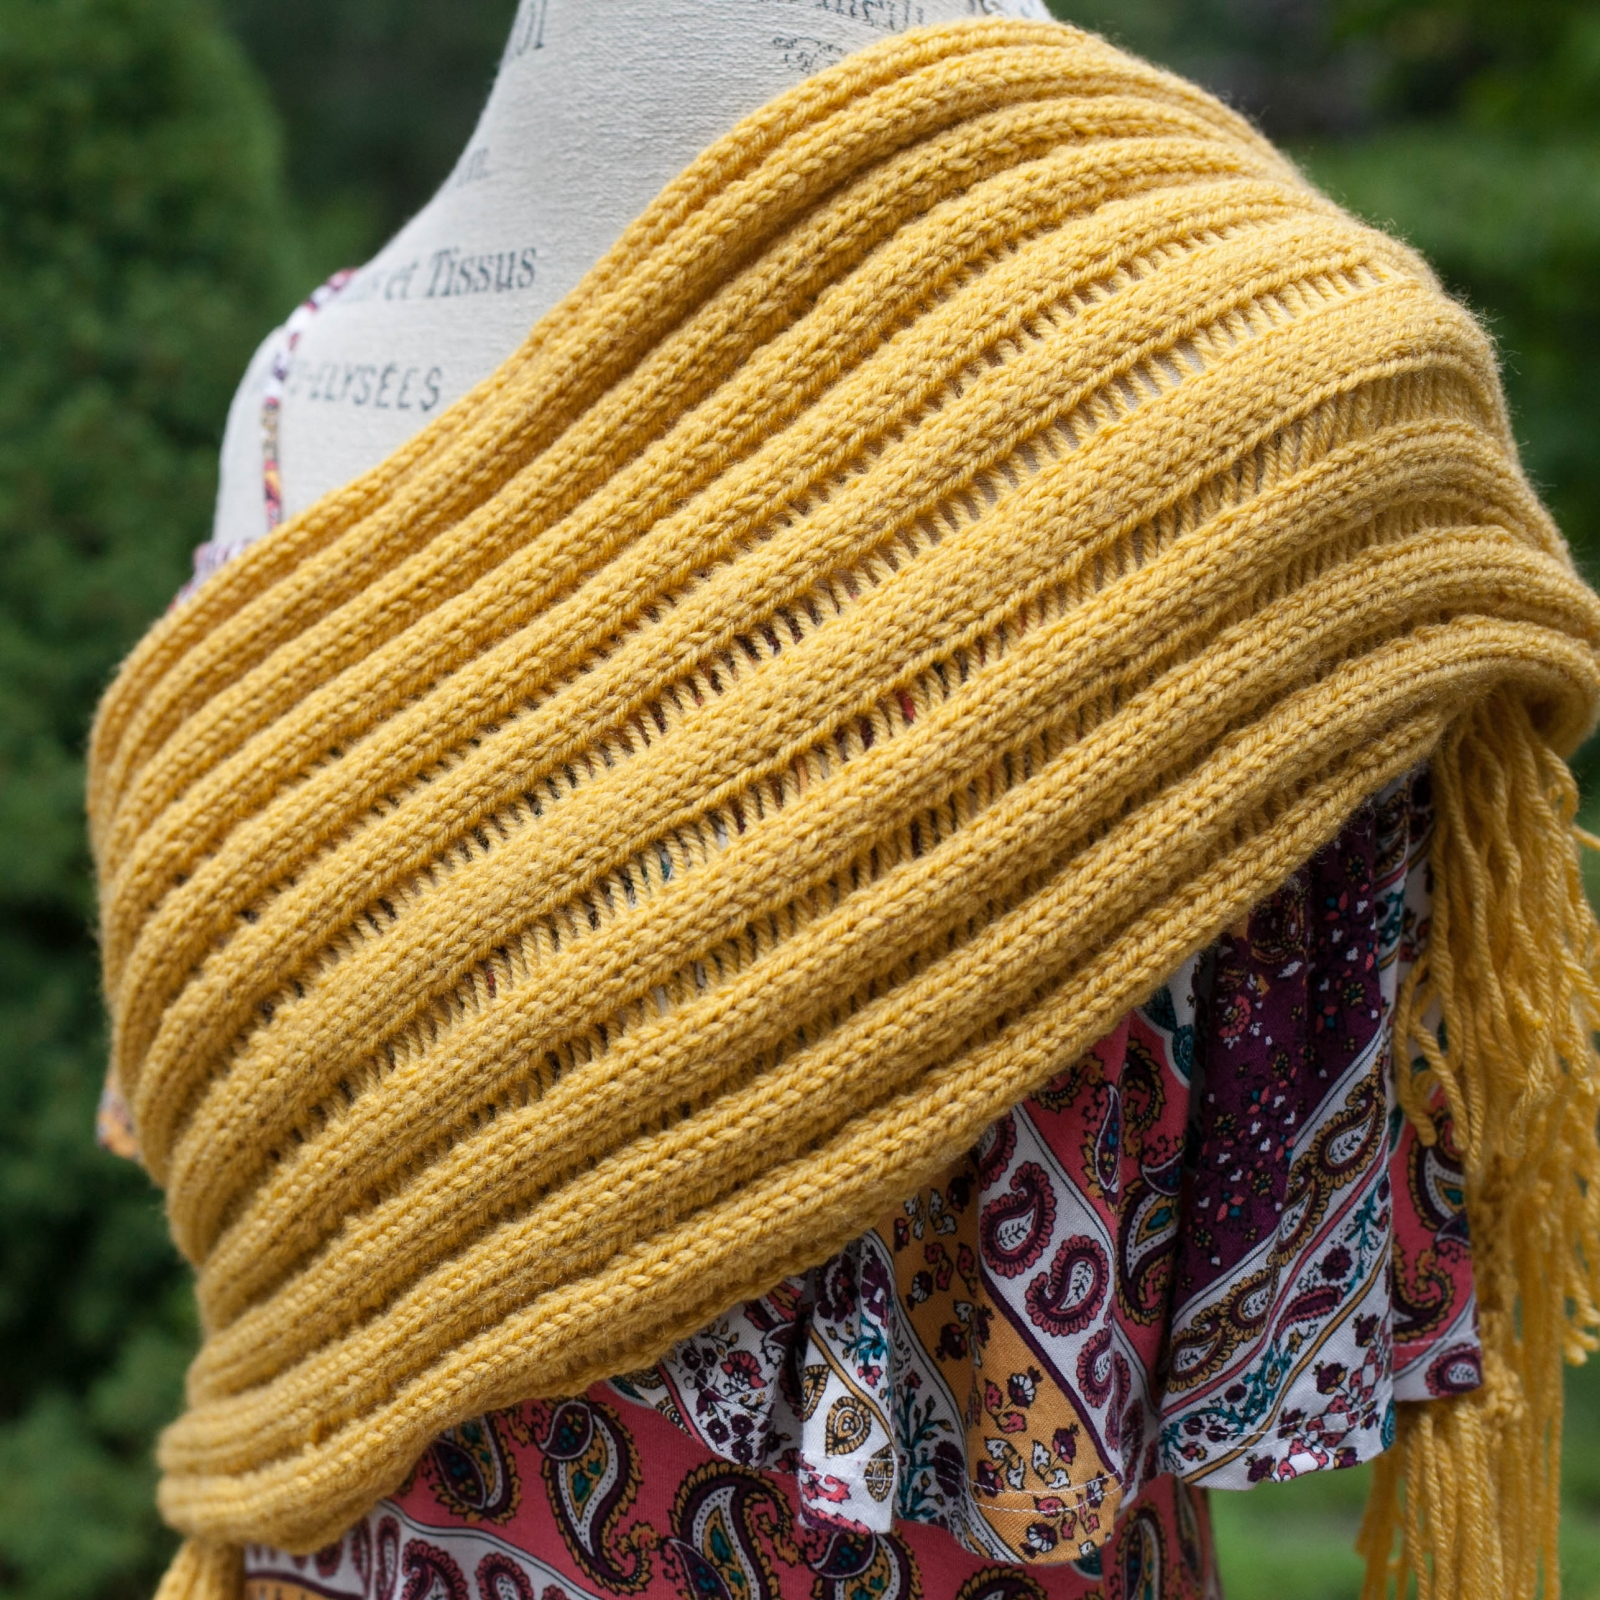 Open Knit Scarf Pattern Loom Knit Scarf Pattern Drop Stitch Open Weave Ribbed Look Finished Scarf Can Be Worn In Many Ways Excellent Drape Beginner Friendly Loom